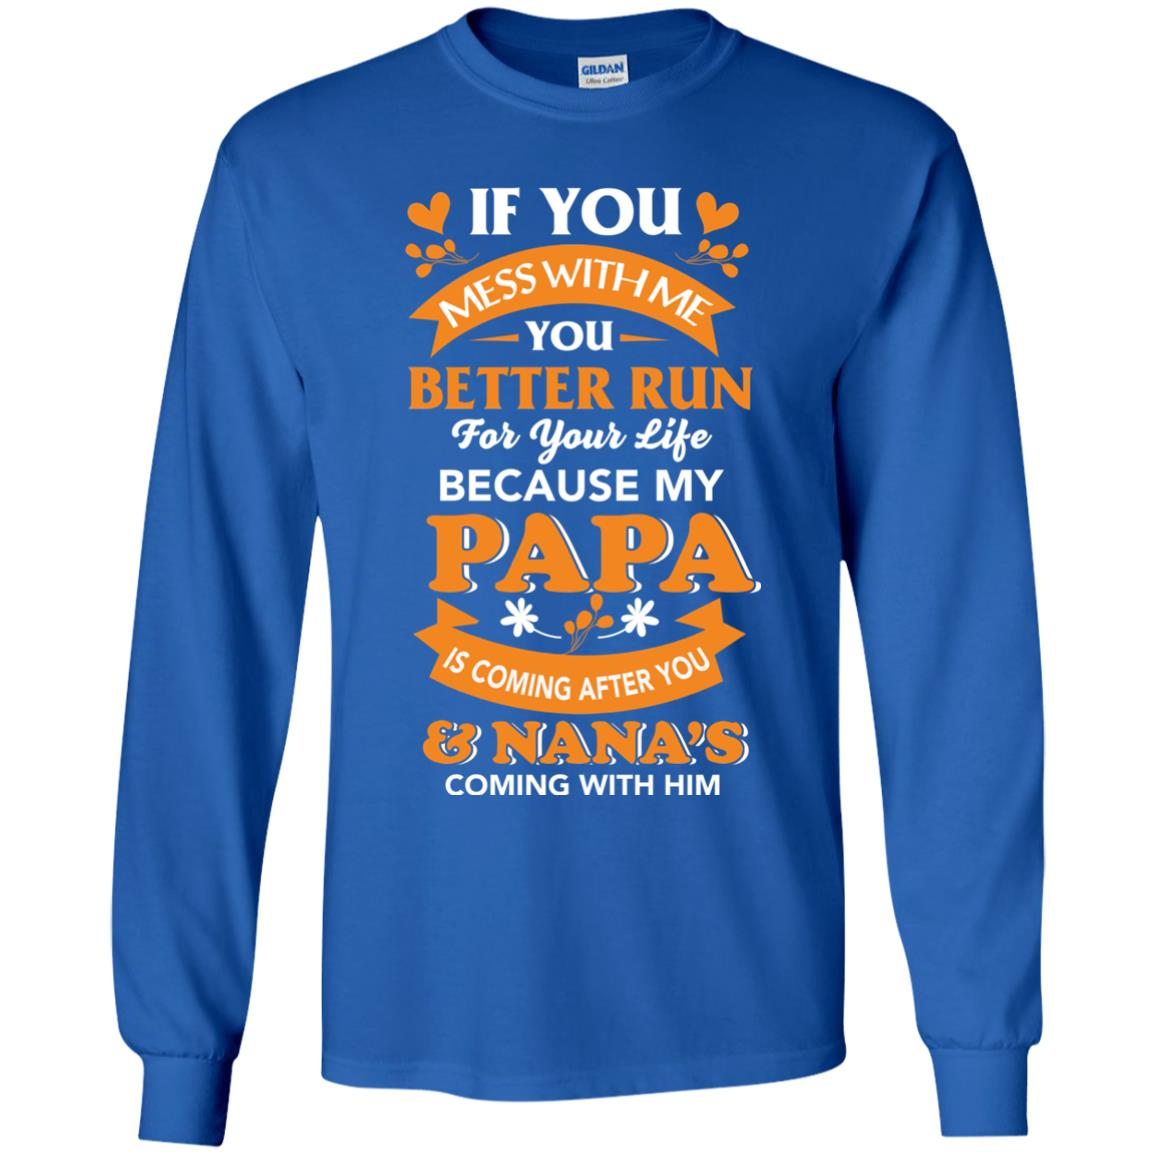 image 1250px Mess With Me? My Papa Is Coming After You & Nana Coming With Him Youth Size Shirt